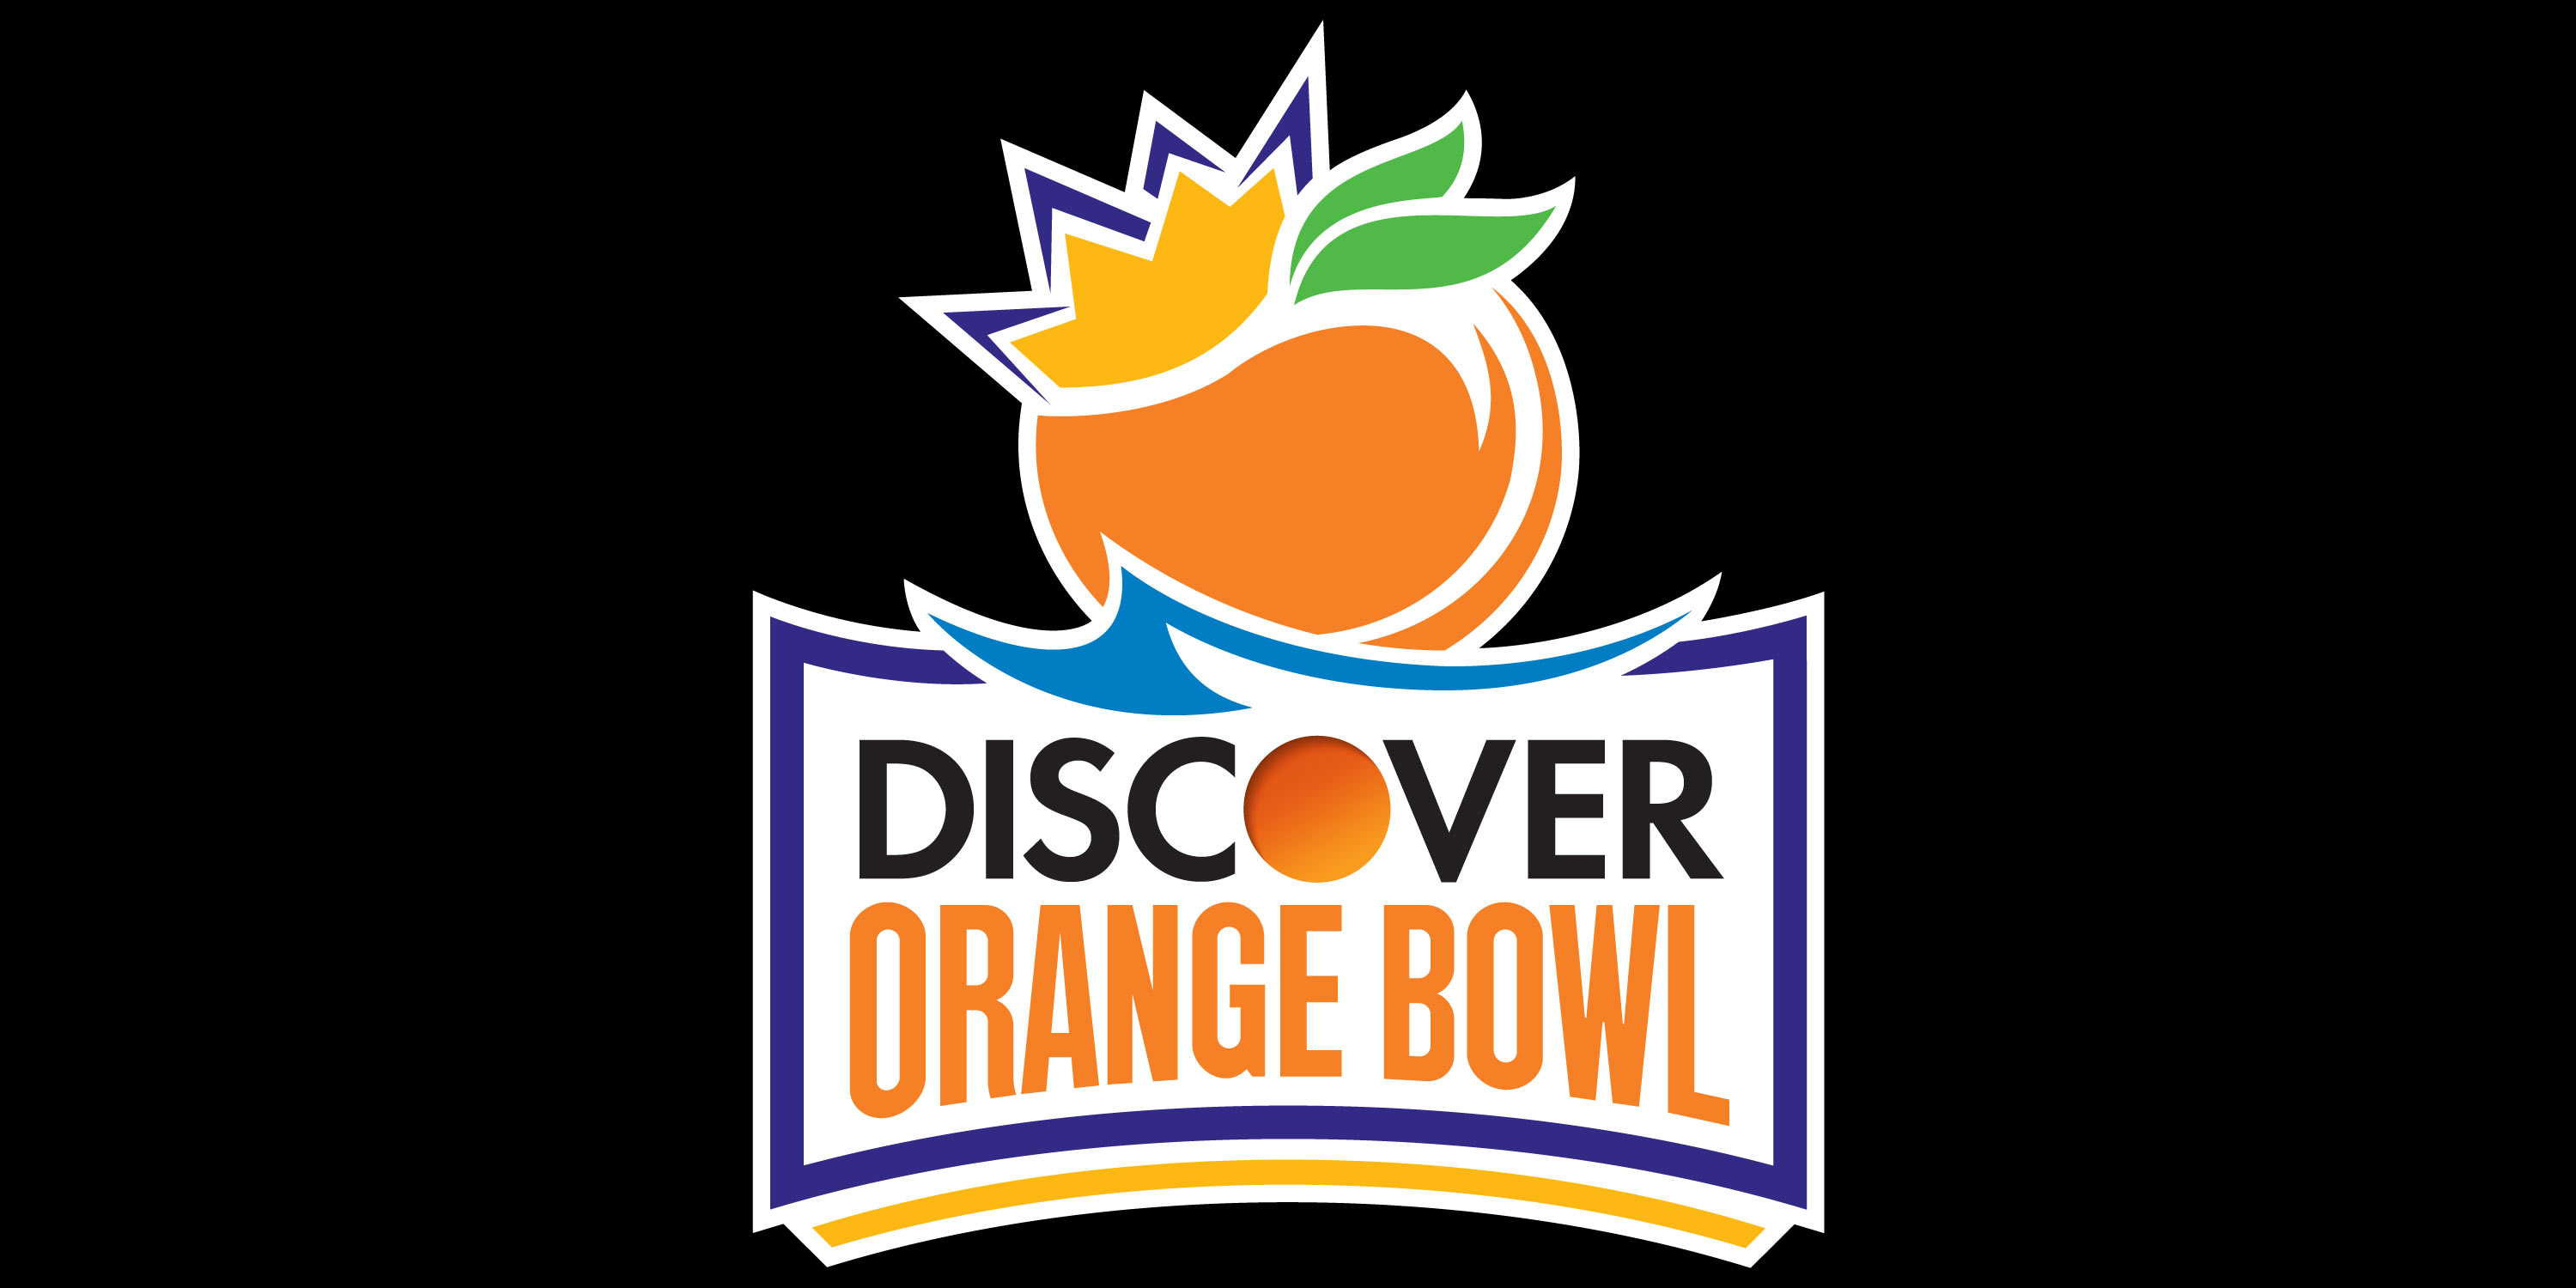 2012 Discover Orange Bowl: West Virginia Mountaineers vs. Clemson Tigers